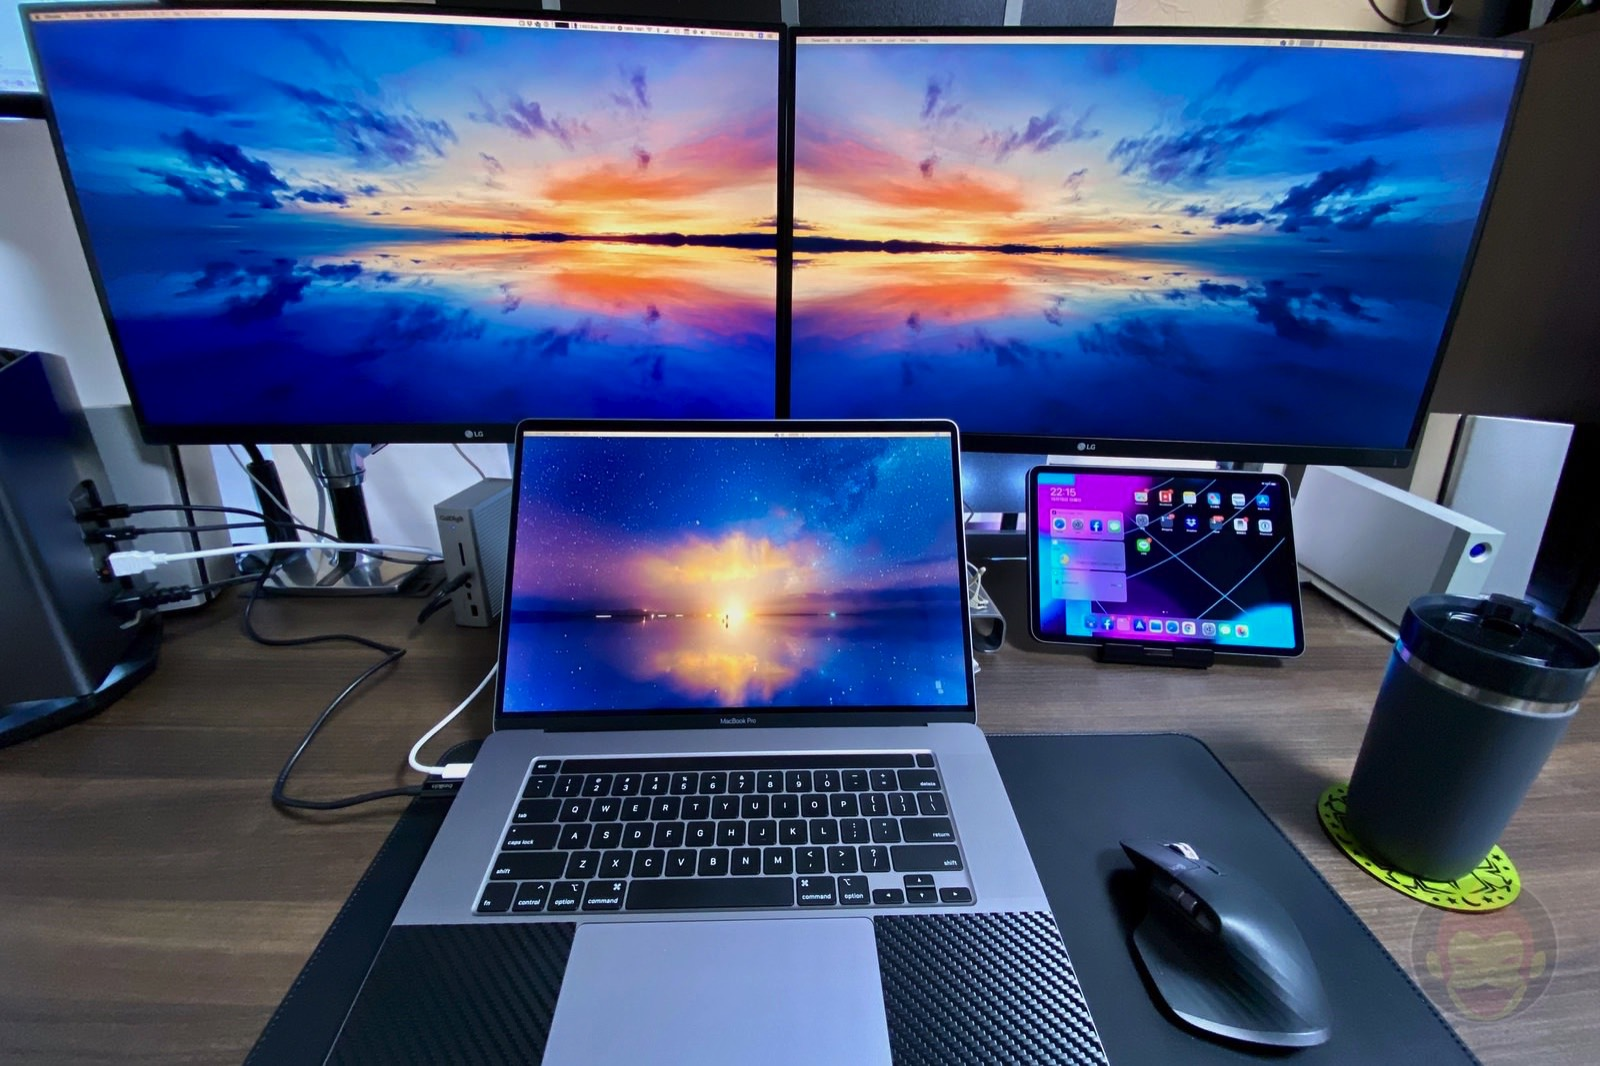 My Desktop after buying mbp2019 16inch 03